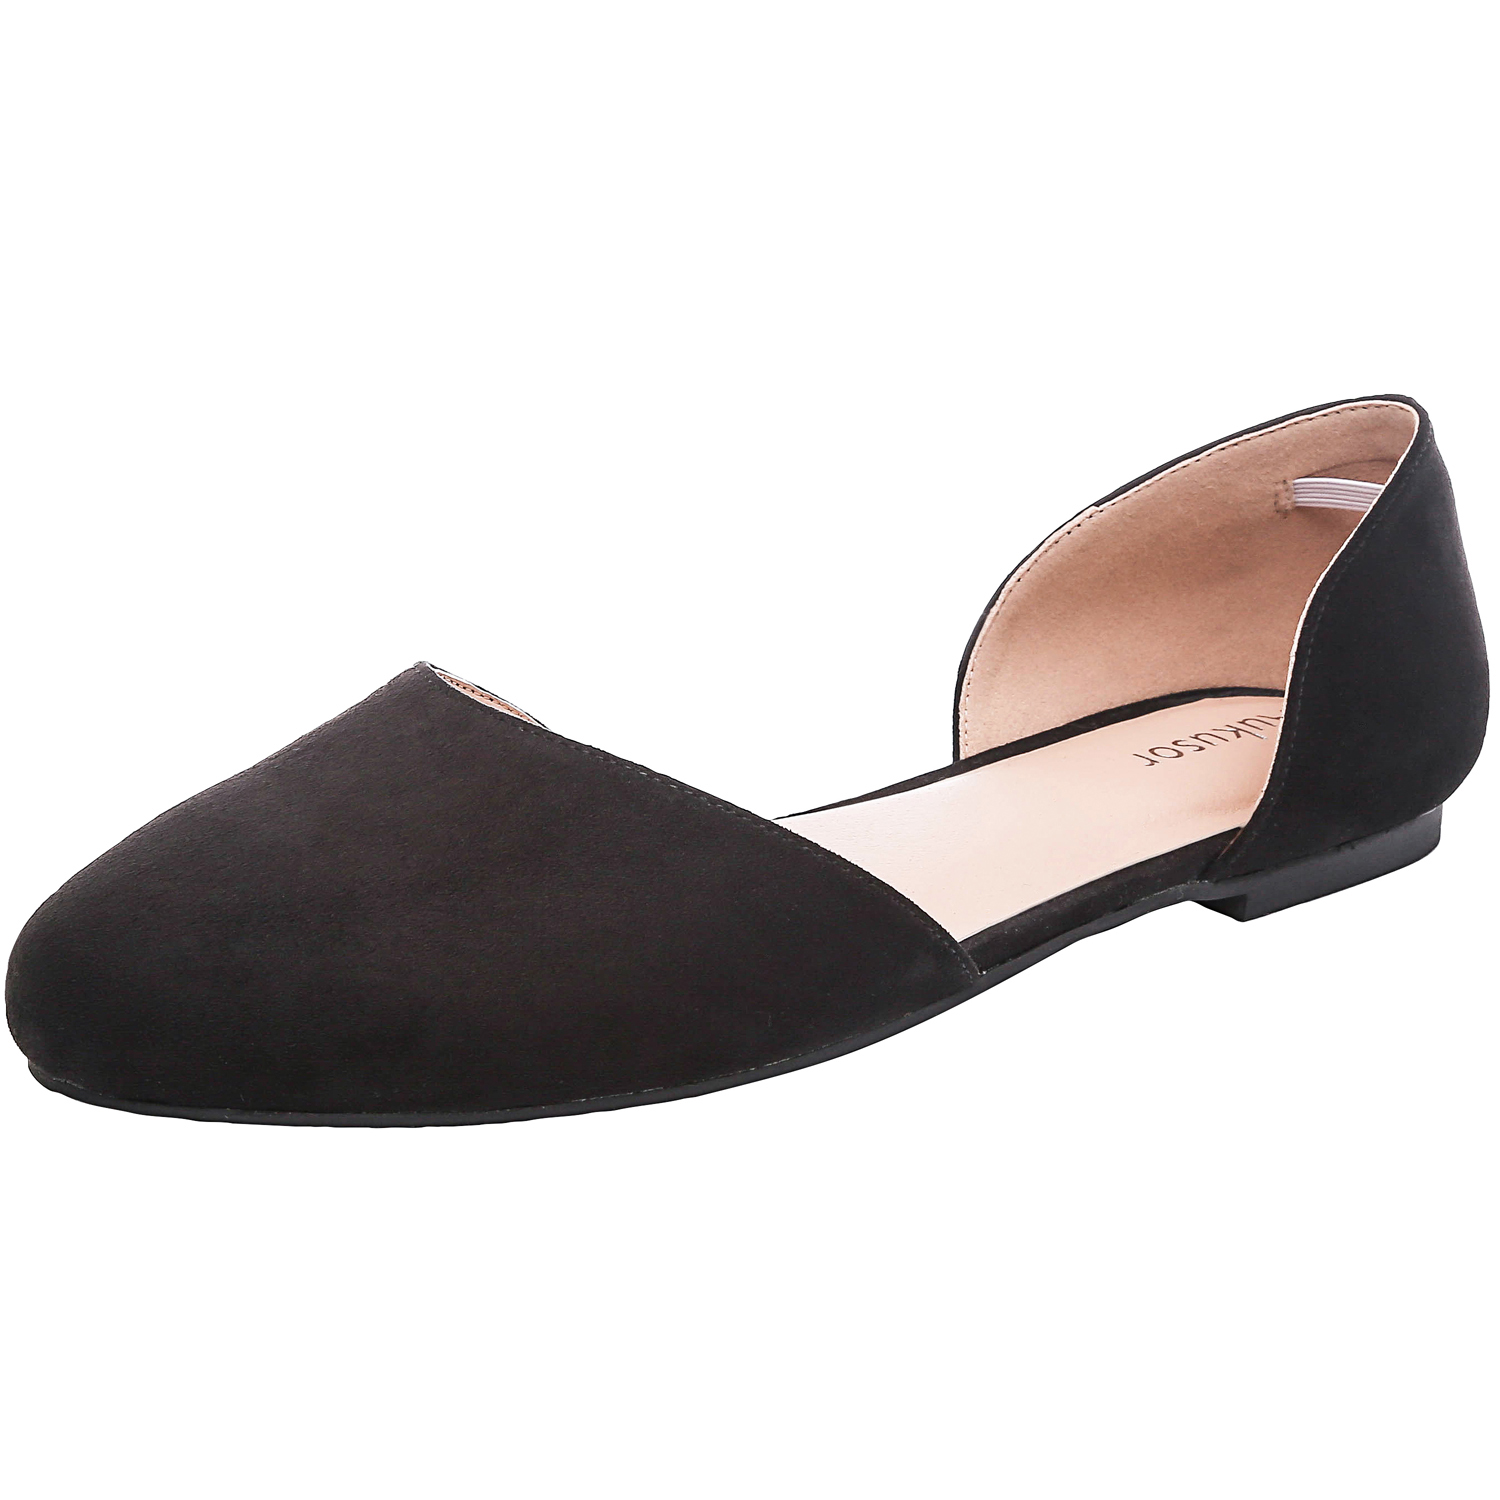 45bfdb91b7afa US  29.99 - Aukusor Women s Wide Width Ballet Flat - Comfortable Sandals  Slip On Closed Toe Casual Summer Shoes. - www.luoika-us.com